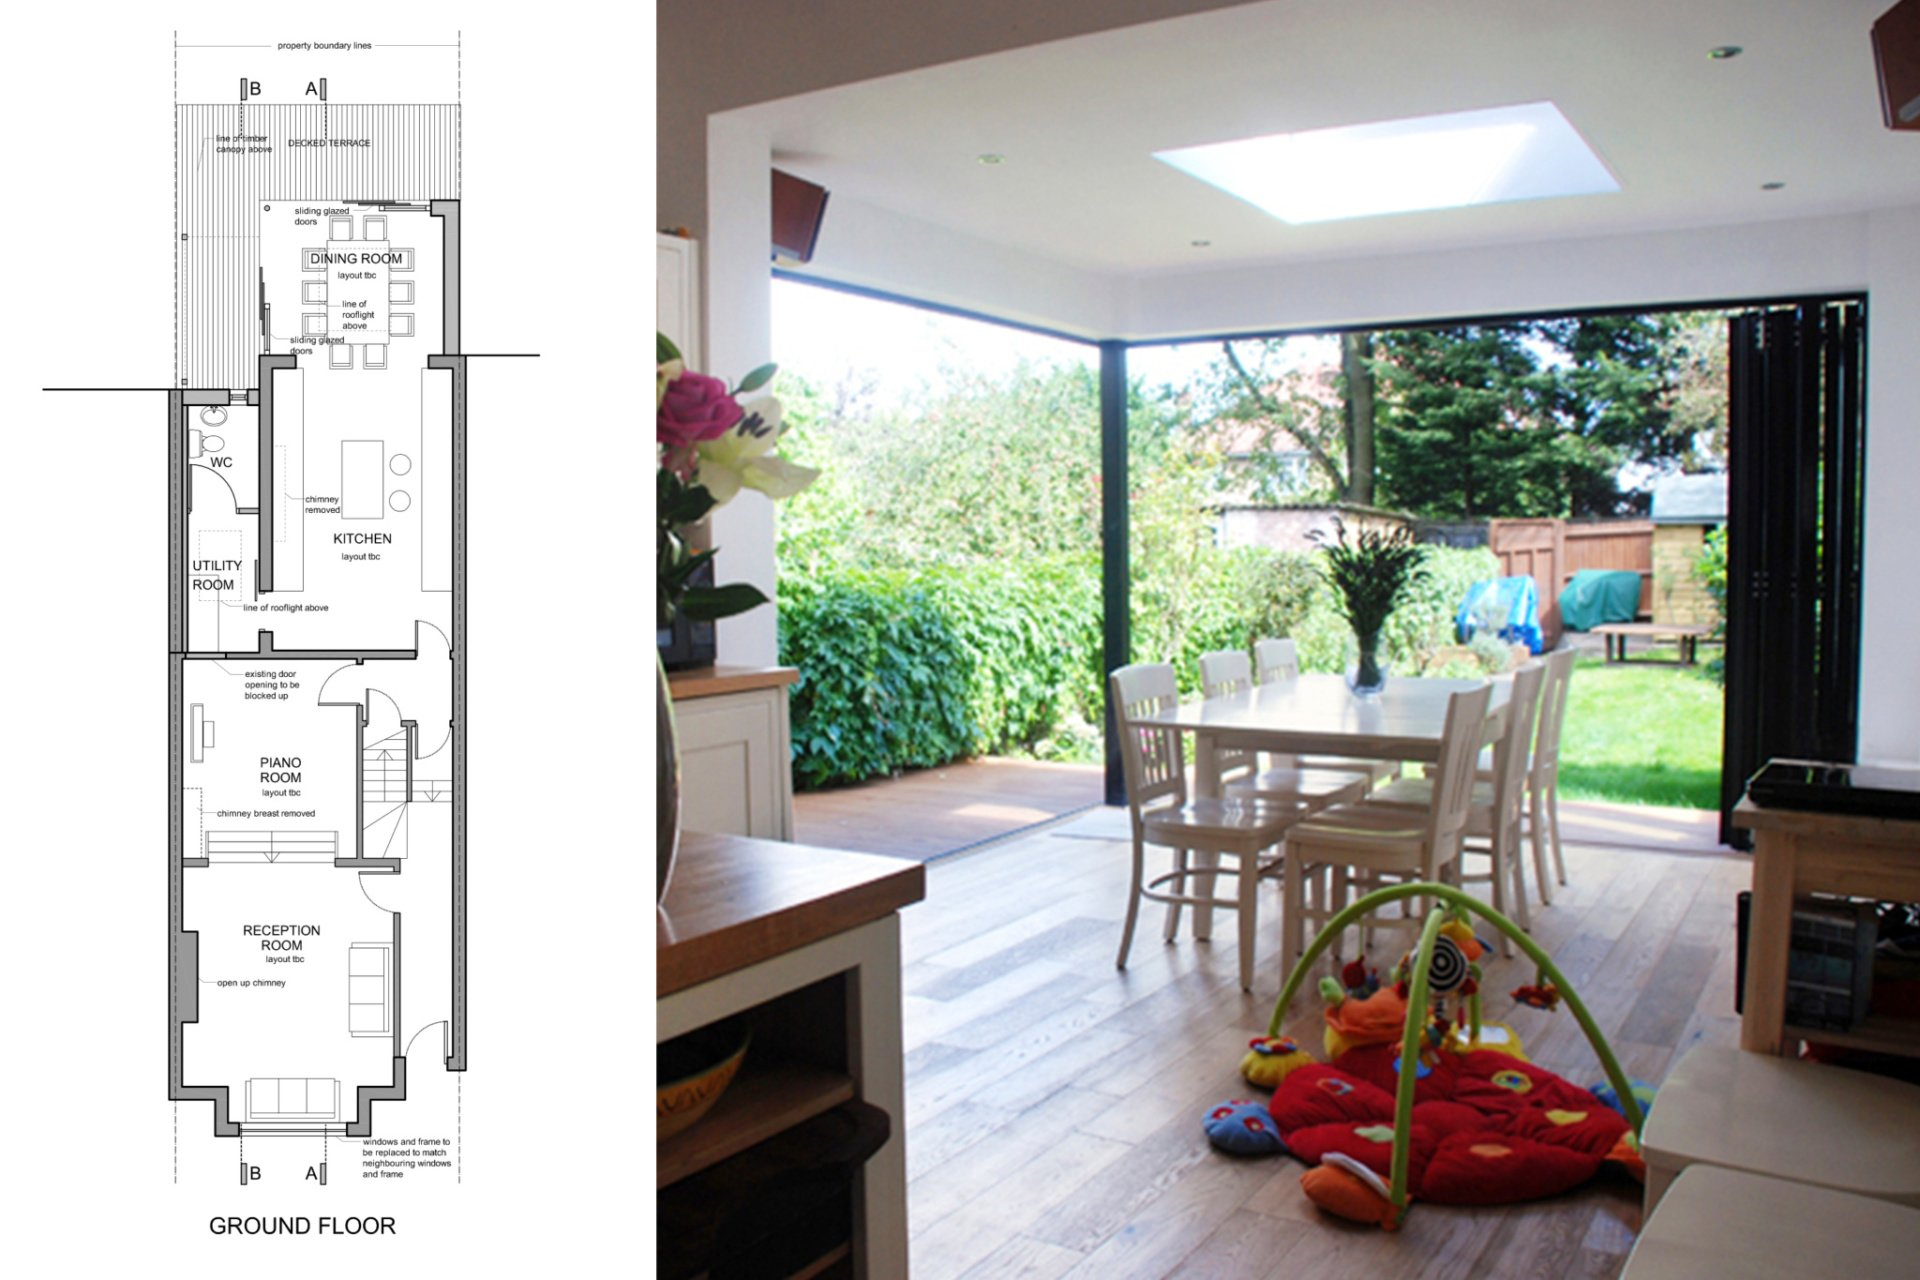 ... Architect designed house extension East Finchley Barnet N2 Ground floor plan 1200x800 East Finchley Barnet & Architect designed house extension East Finchley Barnet N2